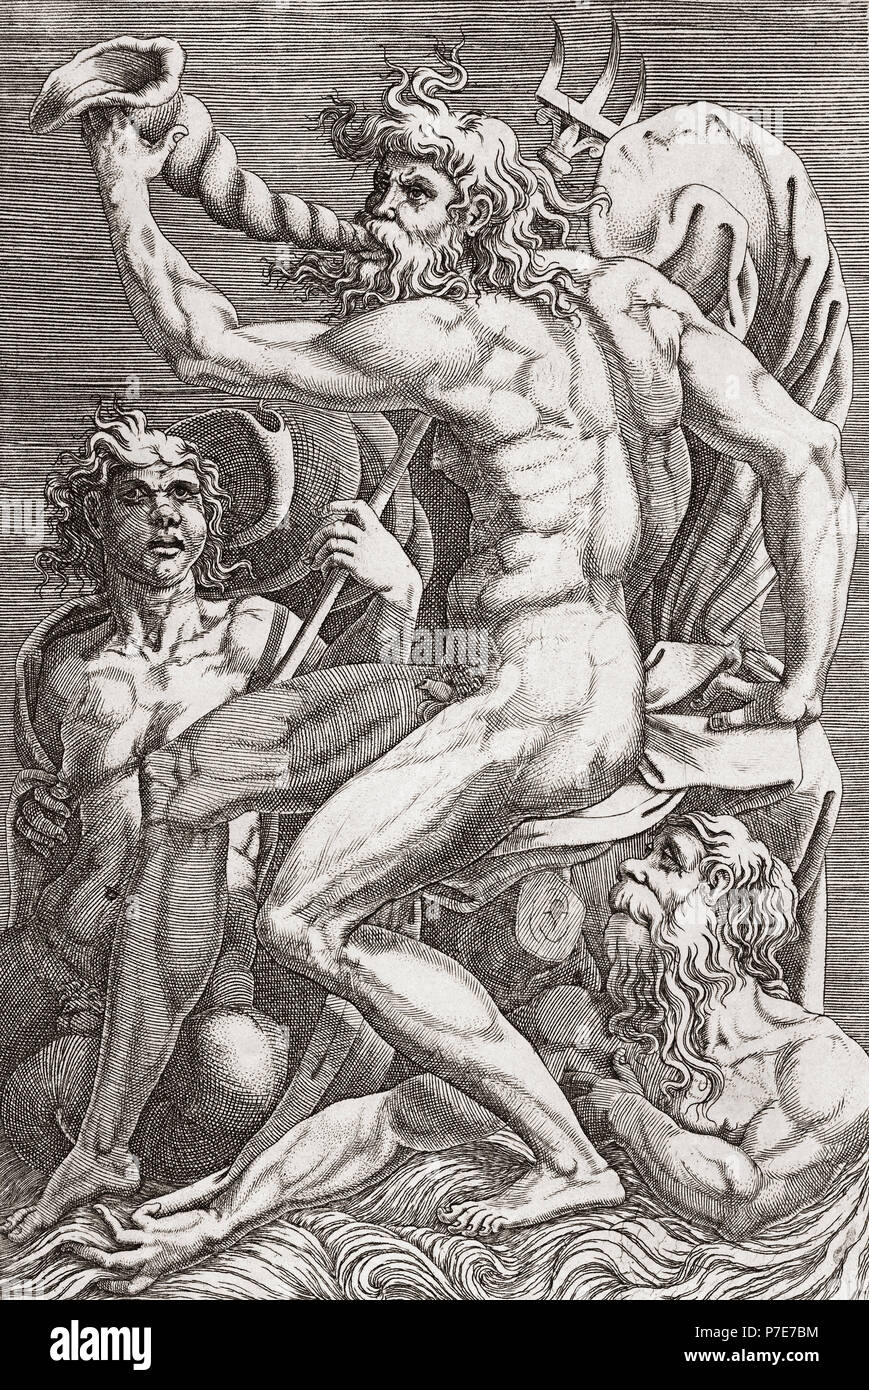 Neptune.  After a 16th century engraving.  Neptune was the Roman god of the sea, and also of horses. - Stock Image